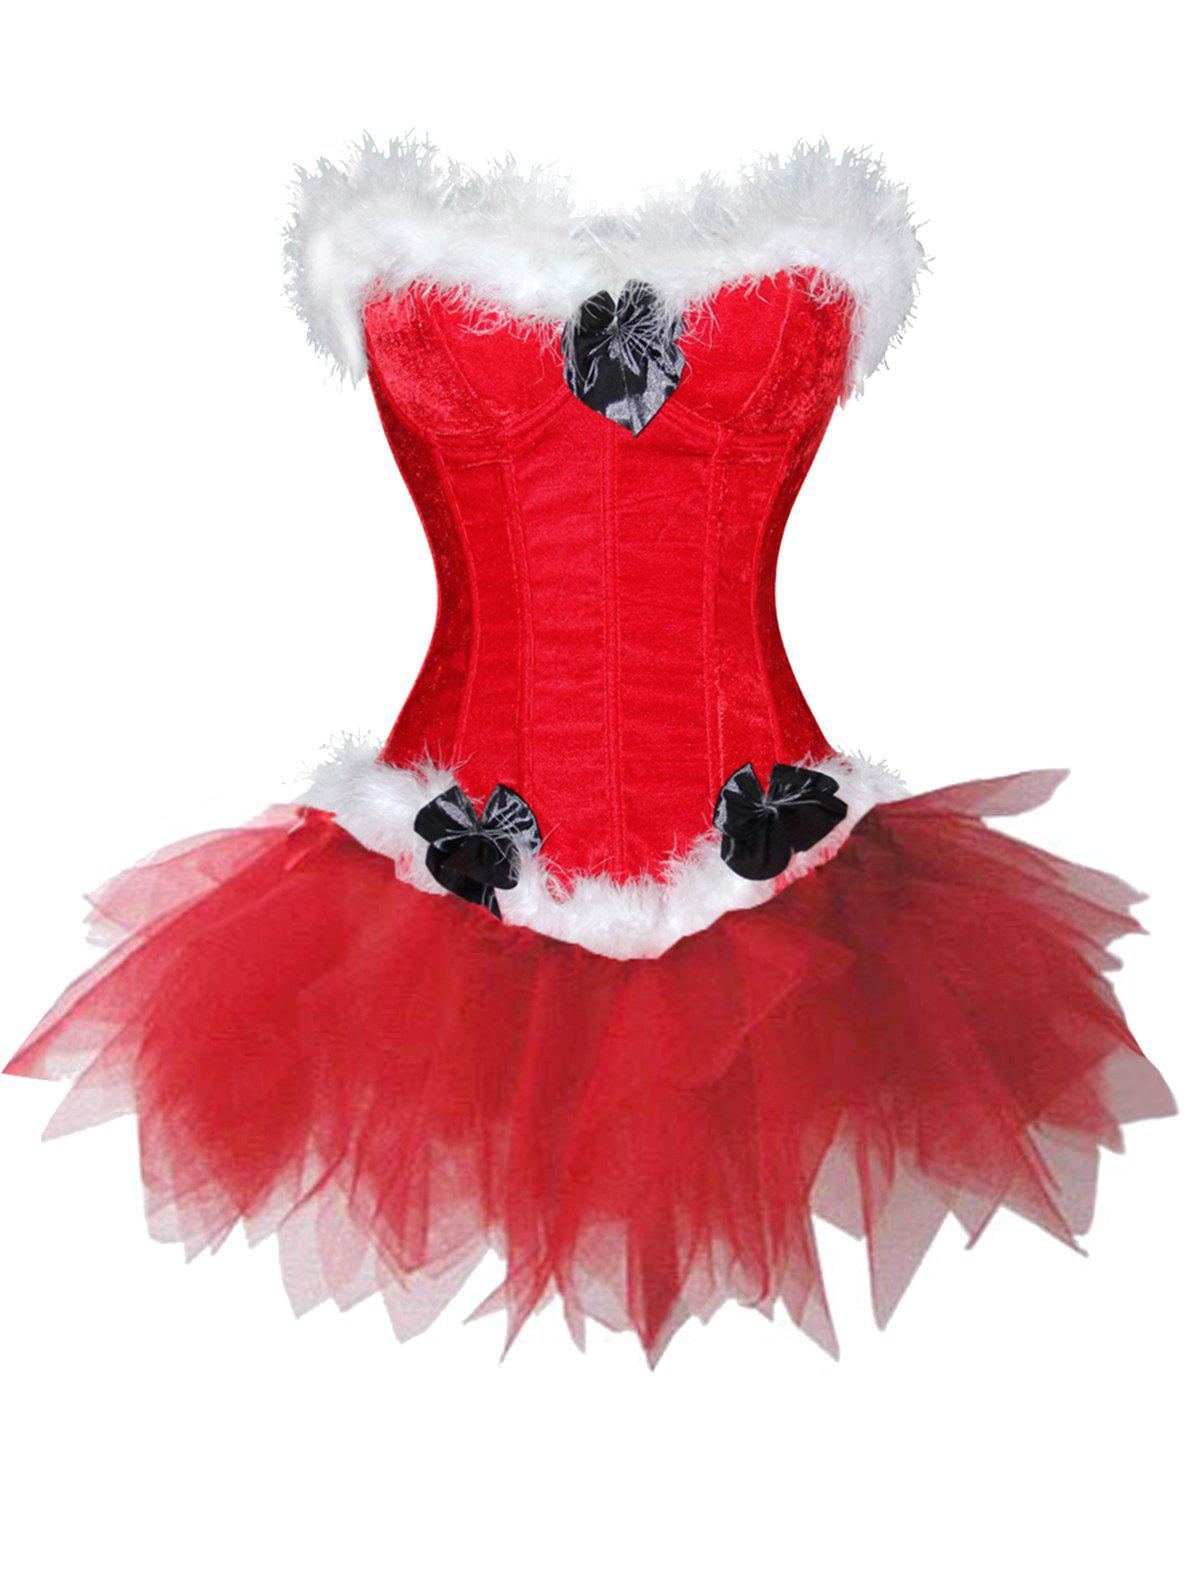 Lingerie Christmas Santa Claus Two Piece Corset Dress - RED L